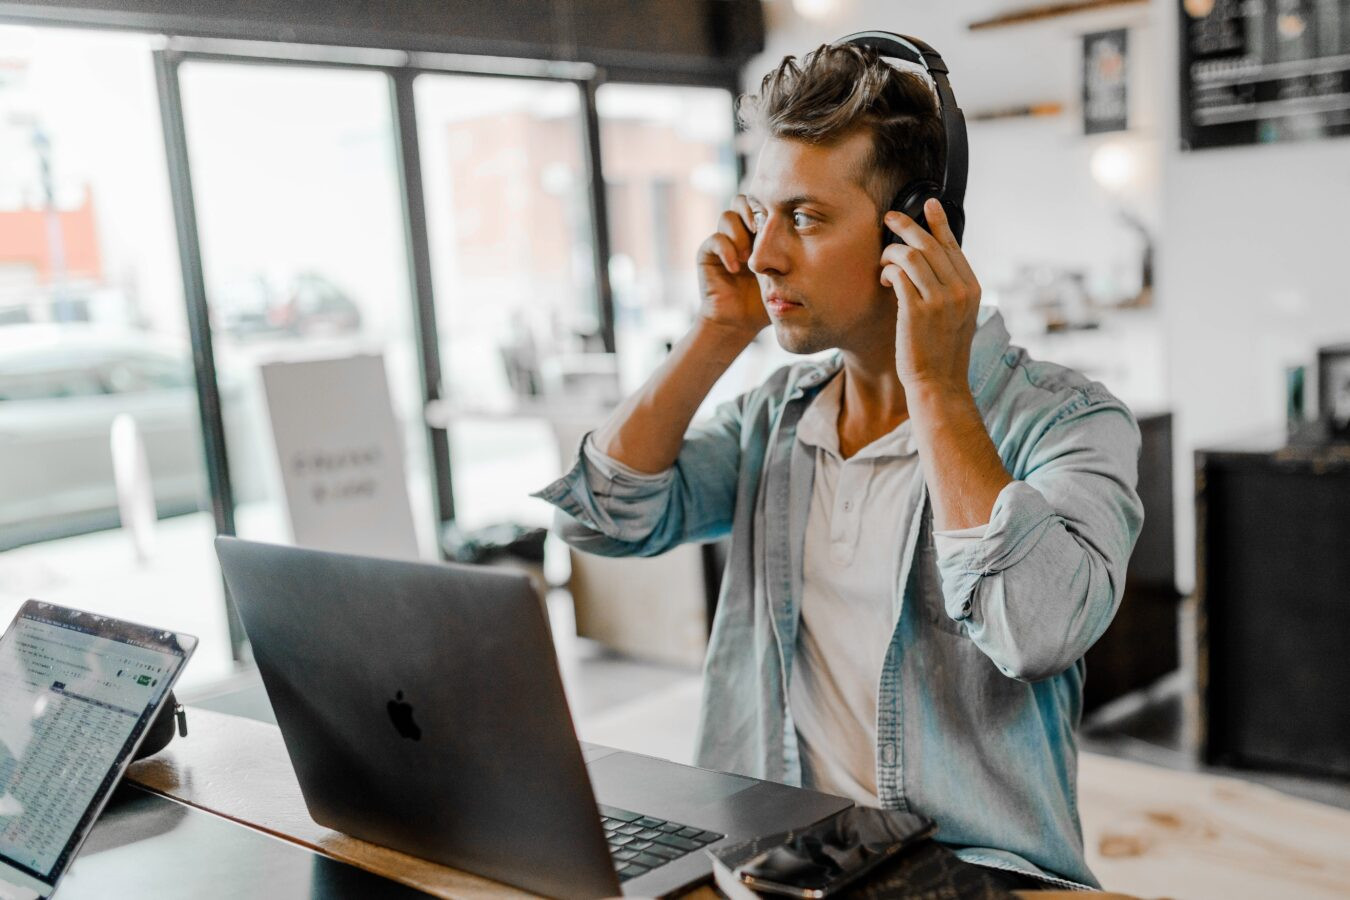 an image showing a guy in a contact centre with his headphones